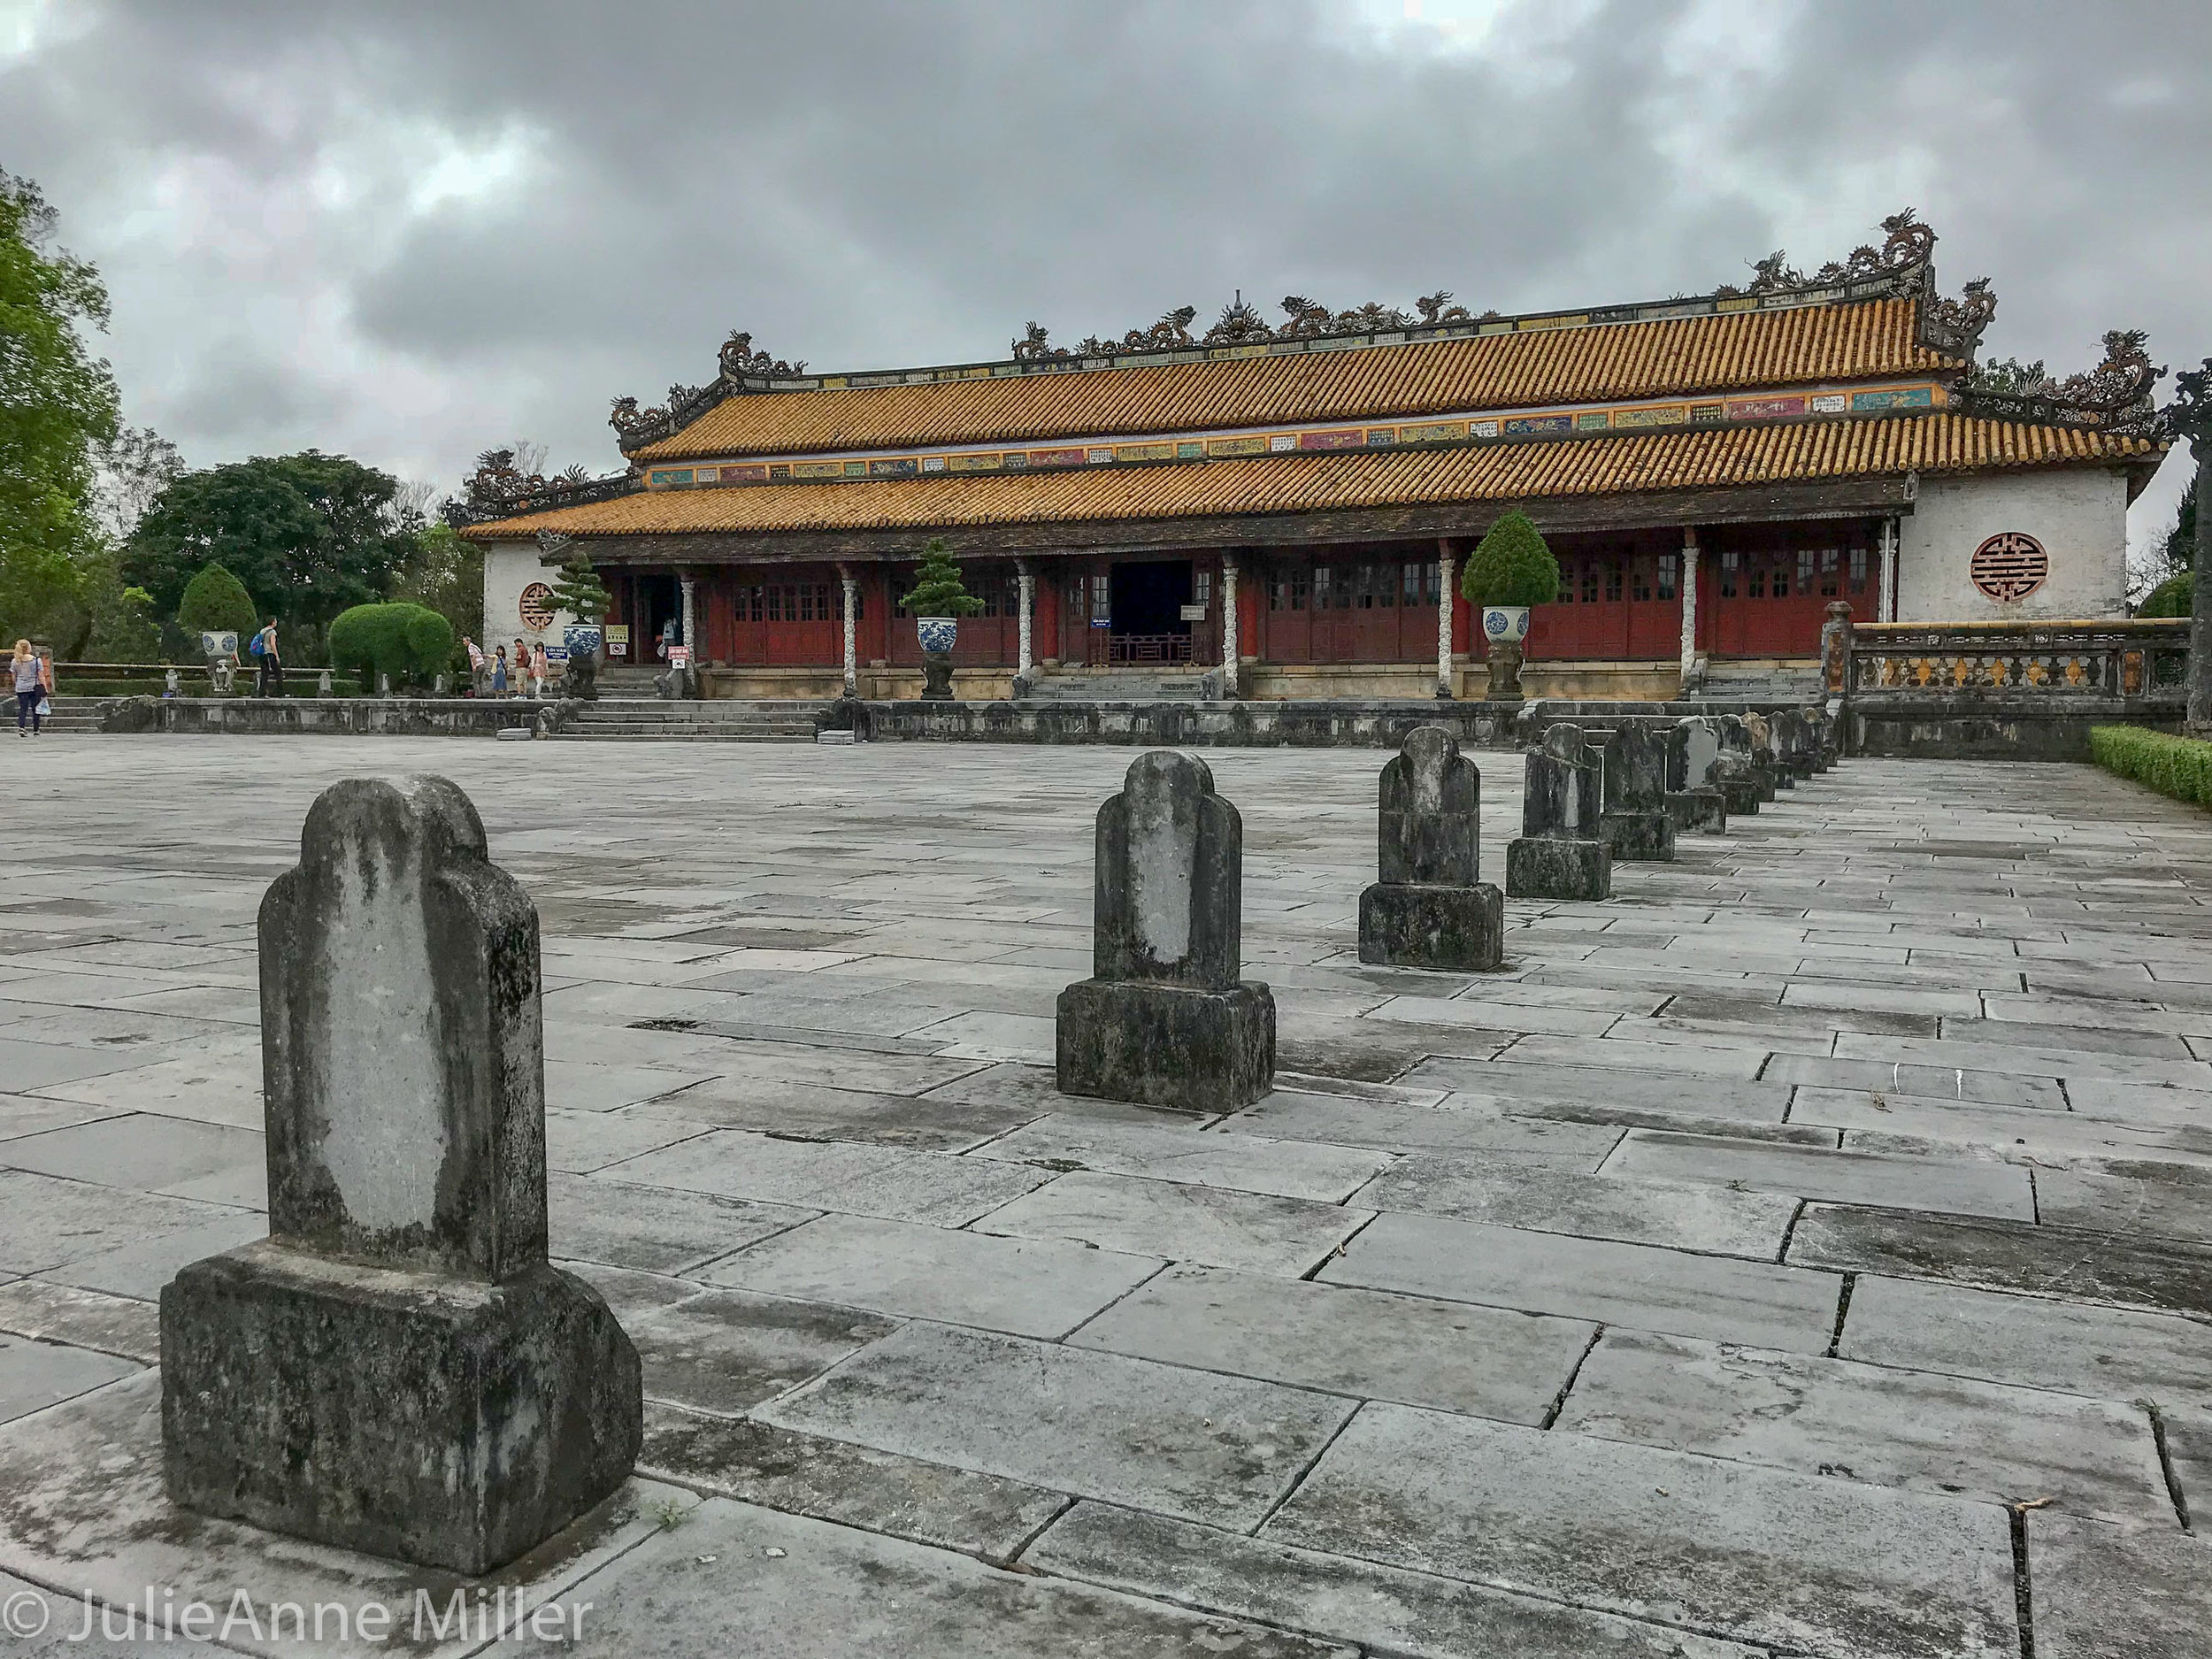 History of Hue: Travelers' Cliff Notes - Short E-Book describing Nguyen Dynasty that ruled Vietnam from 1802-1946.